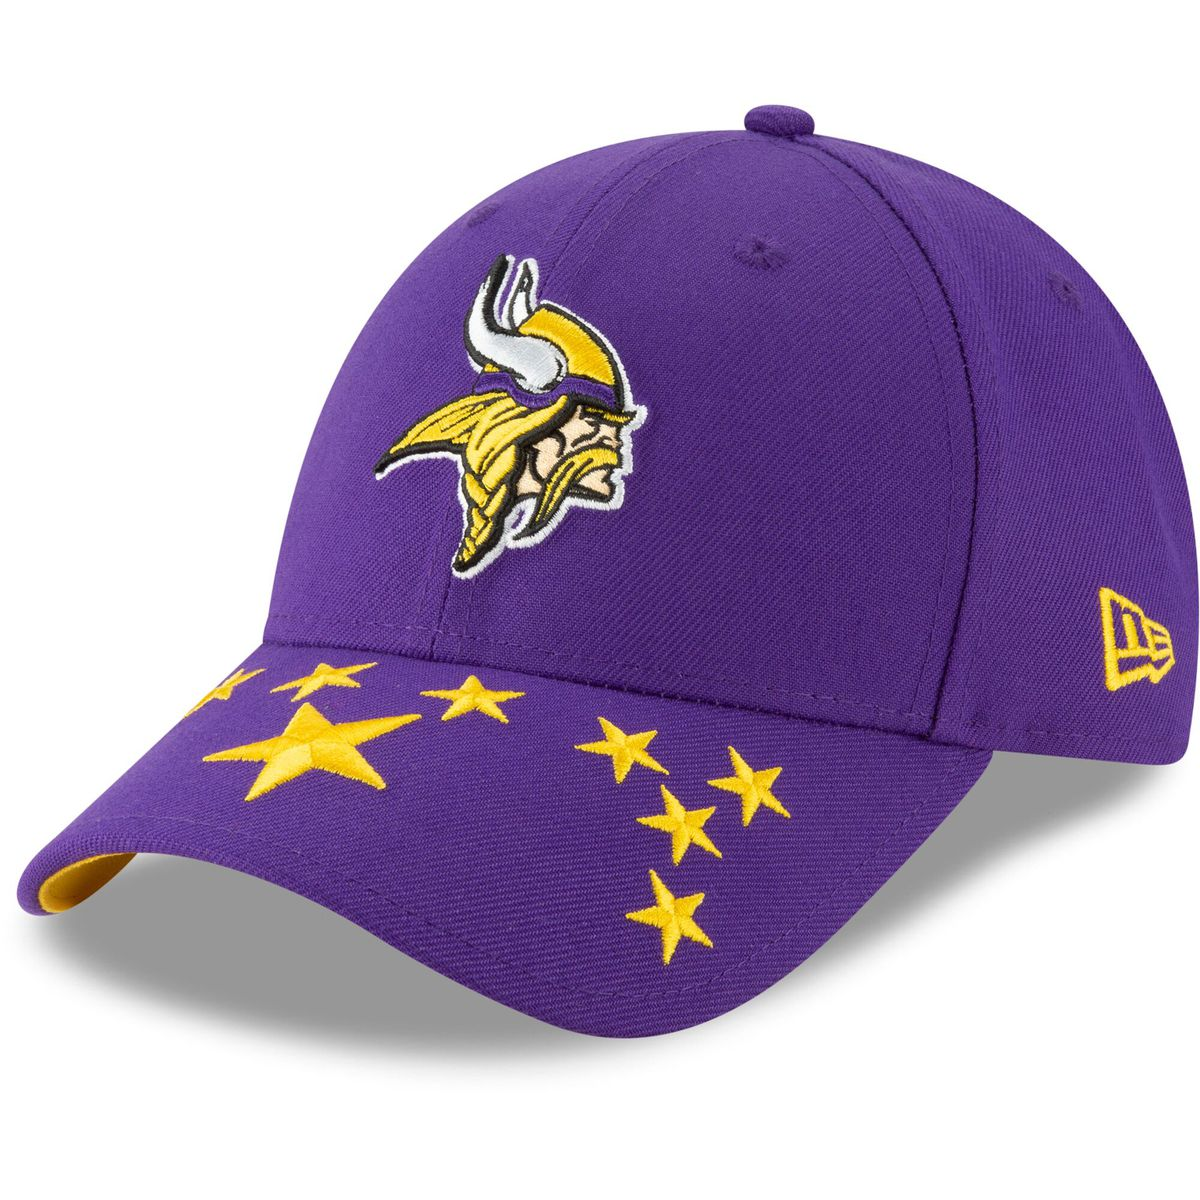 d2f3750788e32c The New Era 2019 NFL Draft hats drop with new looks for every team ...